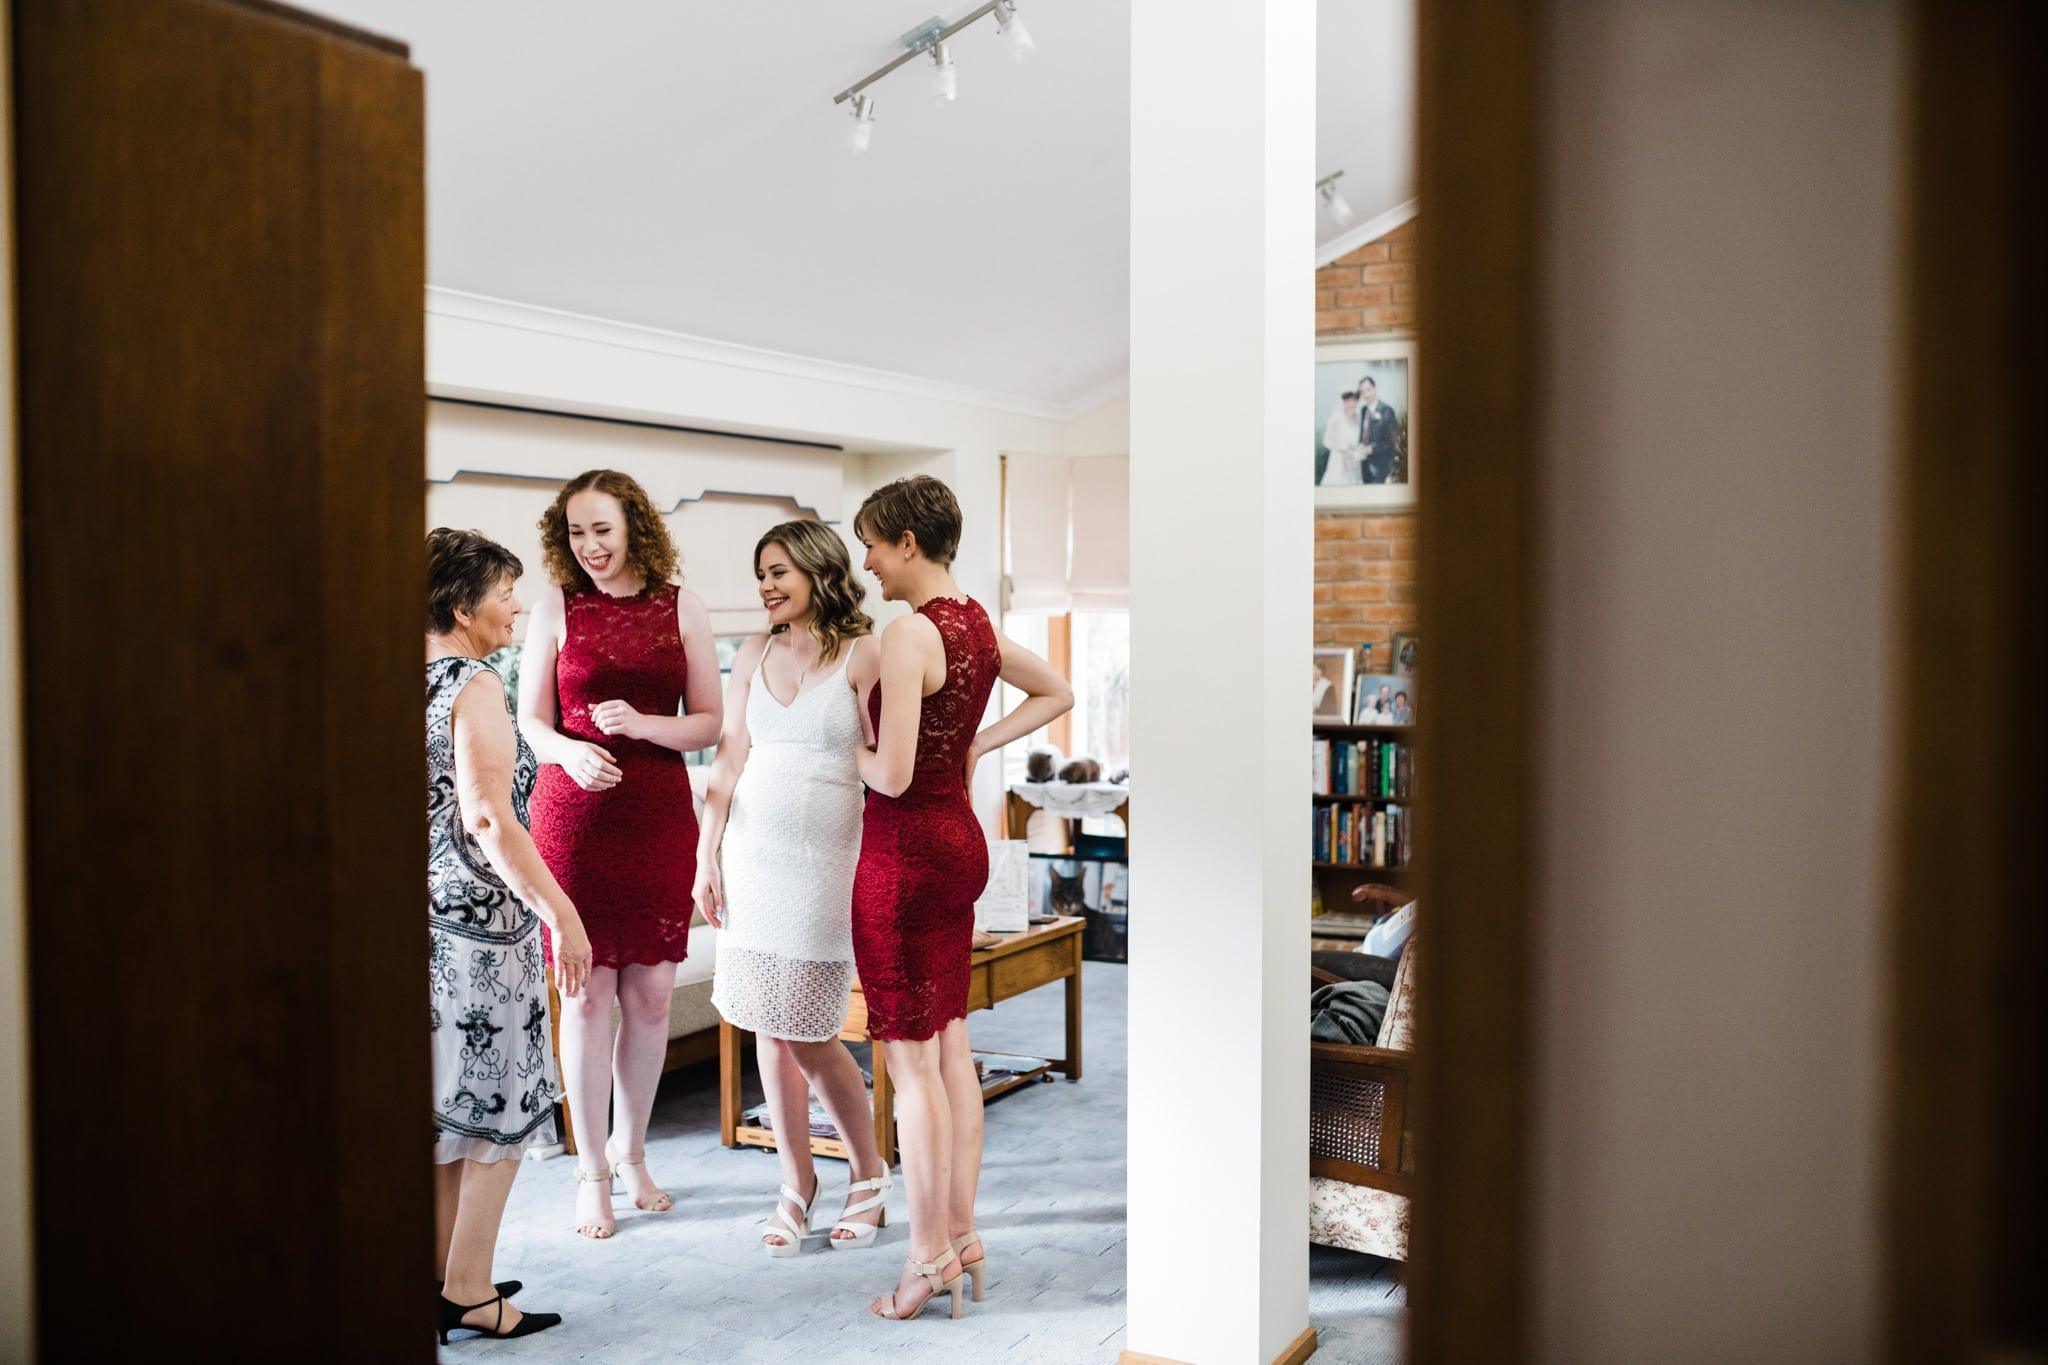 bridesmaids getting ready - wedding photographer documents the day